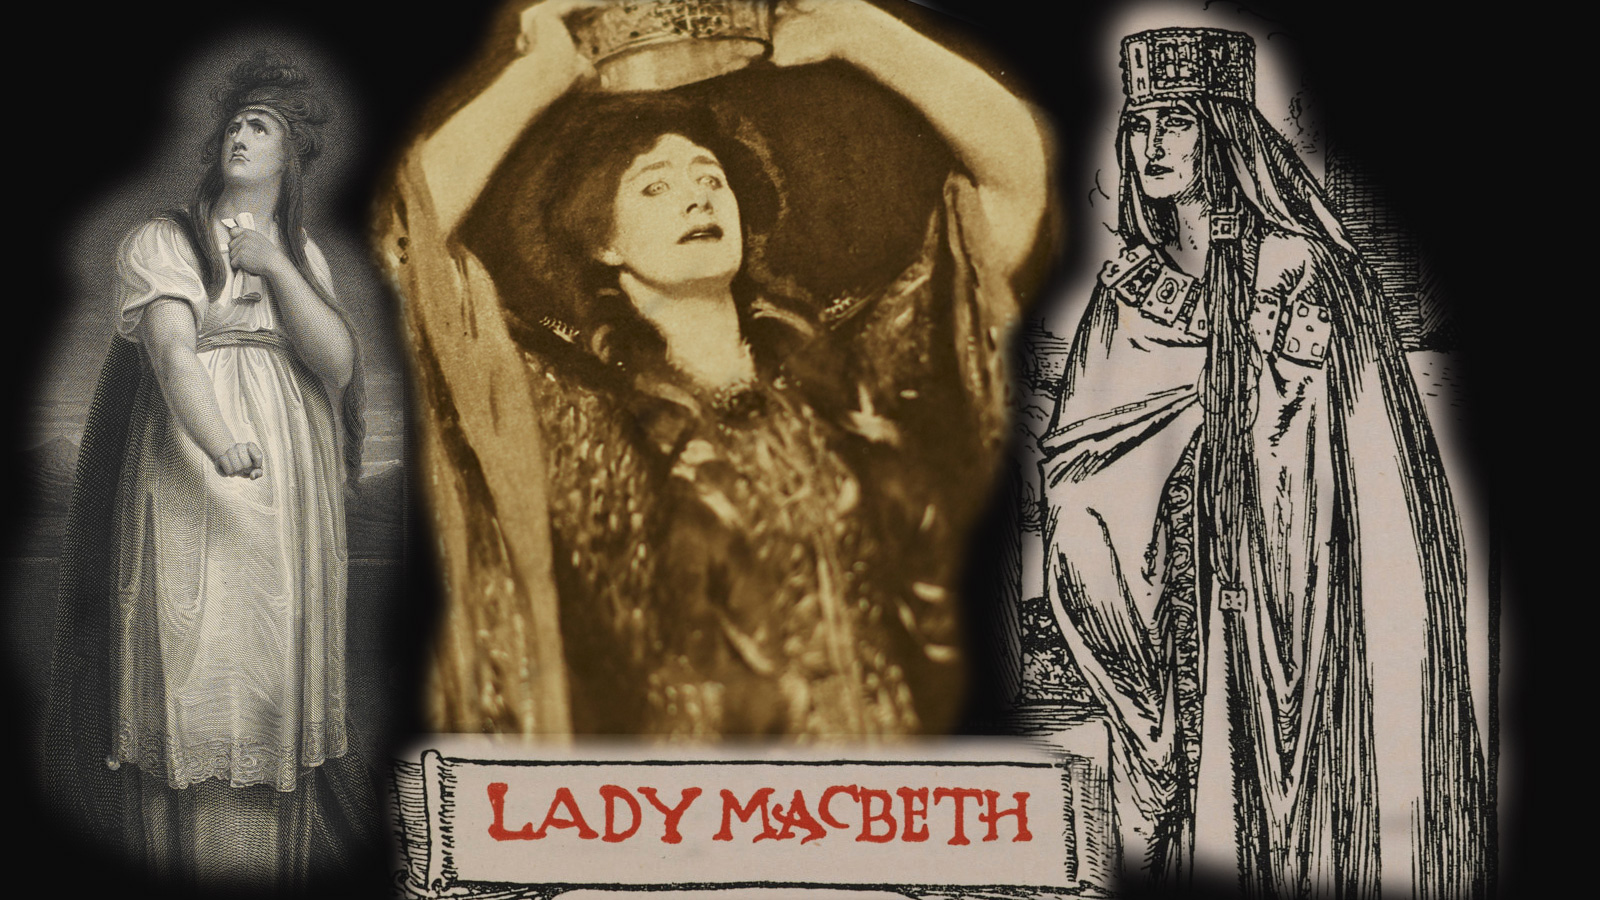 images of lady macbeth